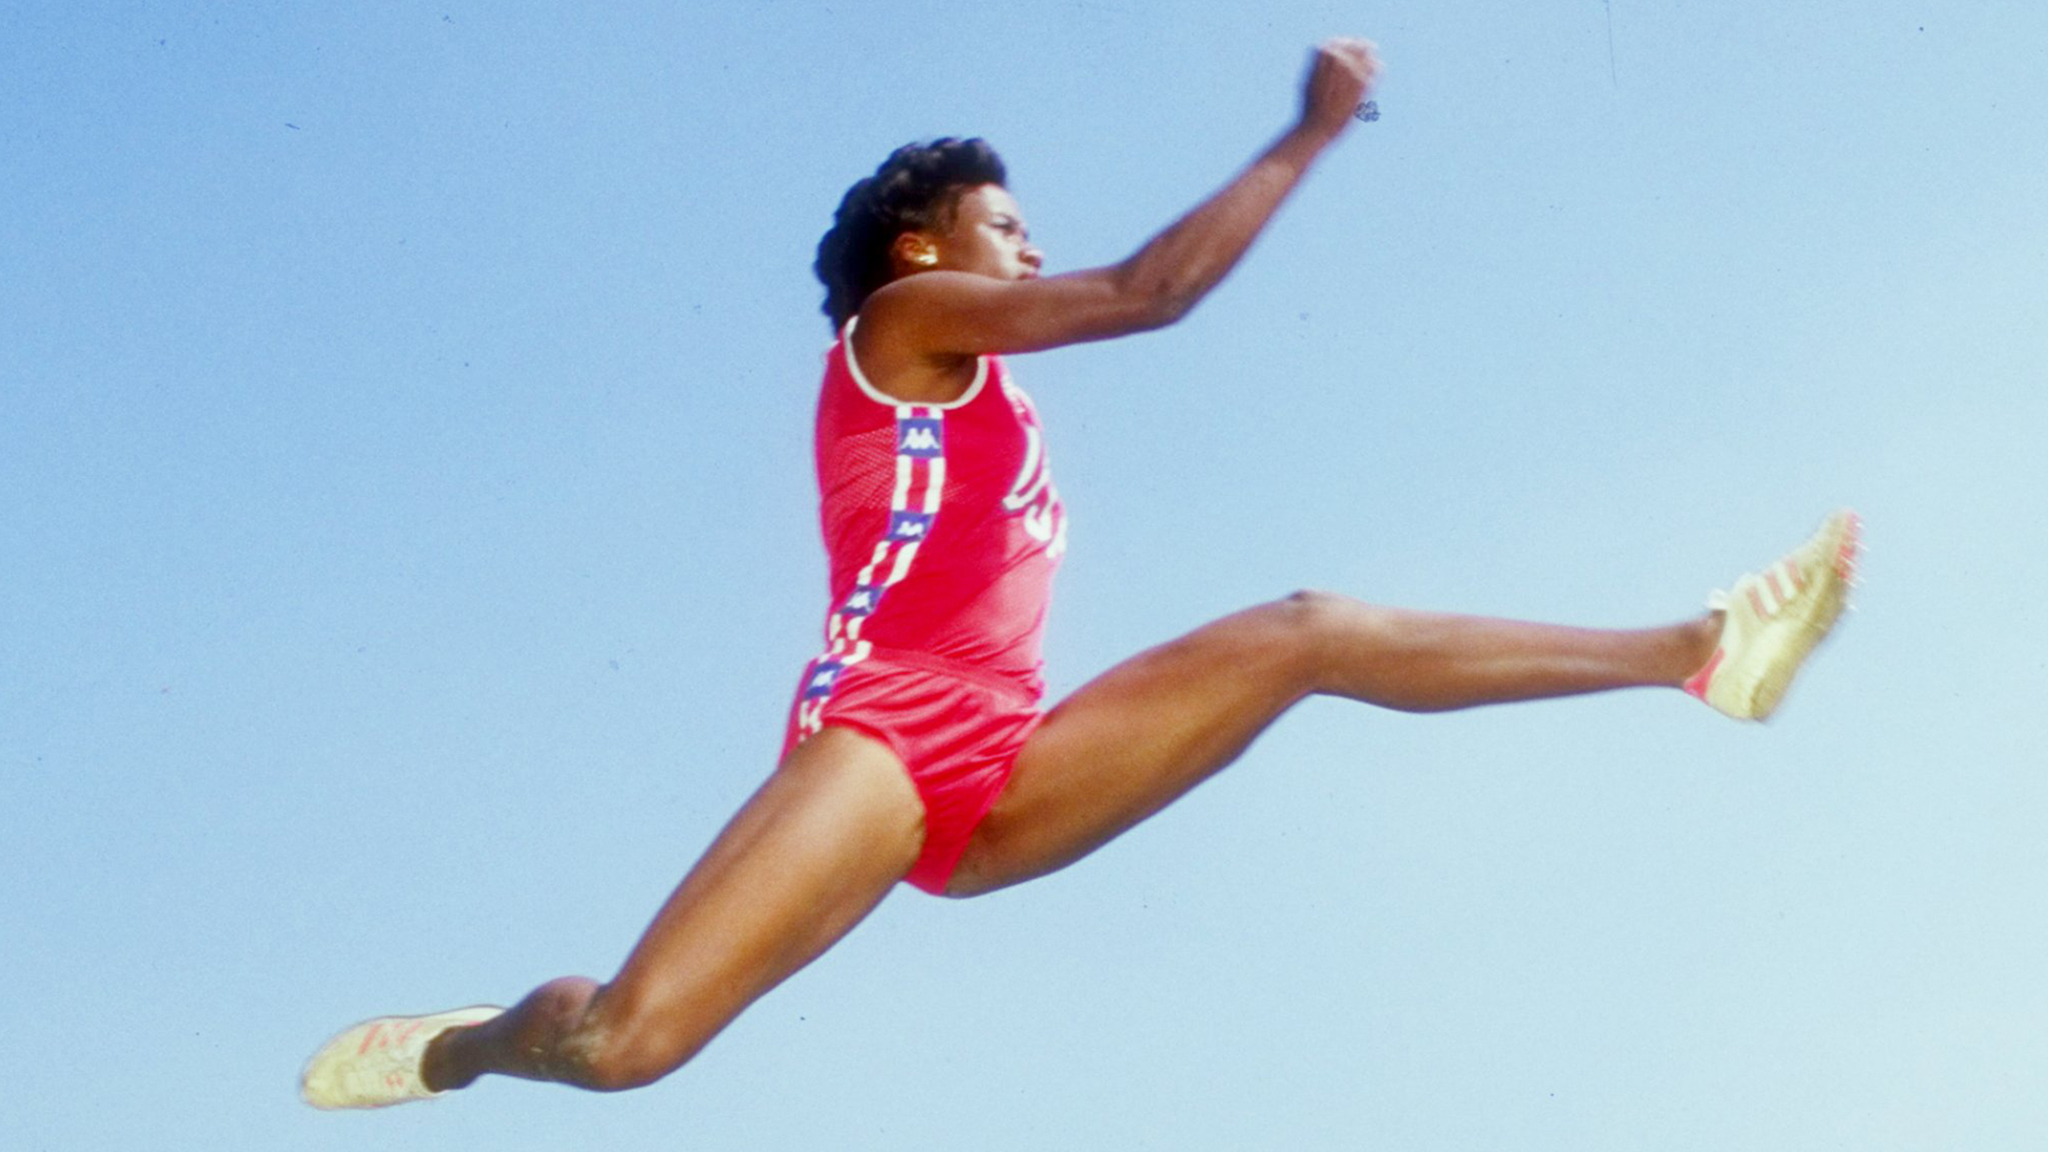 September 24, 1988: Jackie Joyner-Kersee Set the Heptathlon and Long Jump World Records